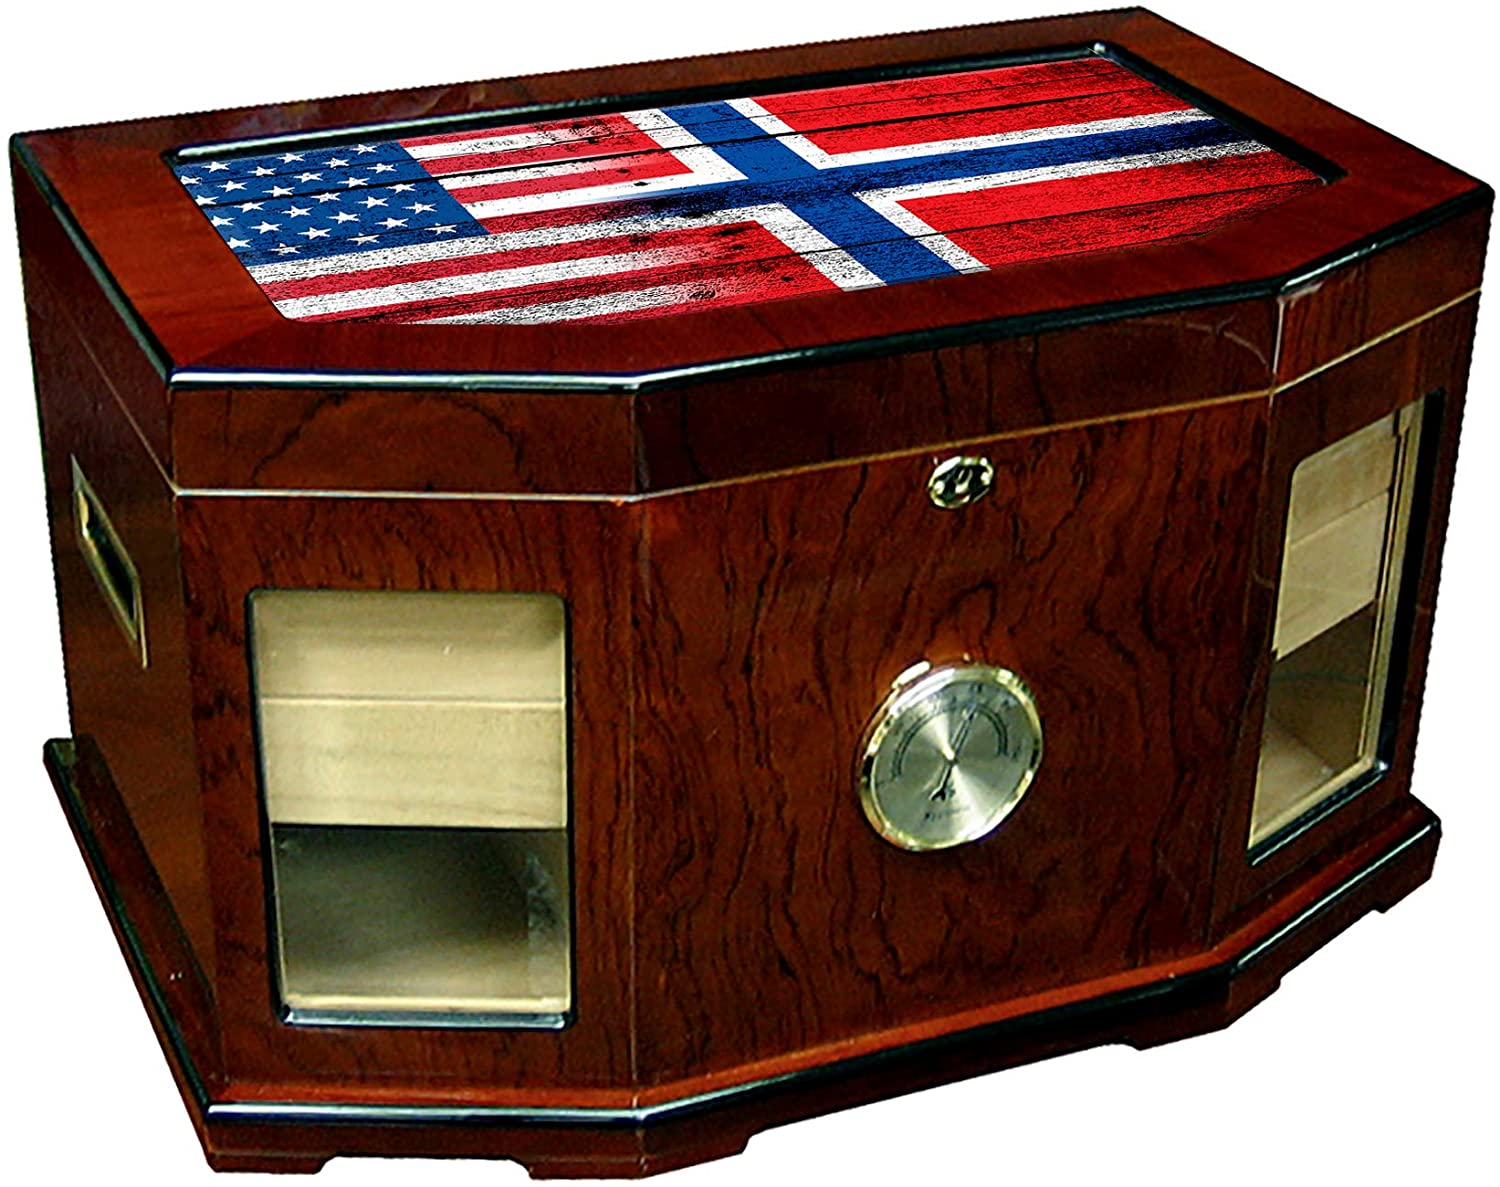 Large Premium Desktop Humidor - Glass Top - Flag of Norway (Norwegian) - Wood with USA Flag - 300 Cigar Capacity - Cedar Lined with Two humidifiers & Large Front Mounted Hygrometer.